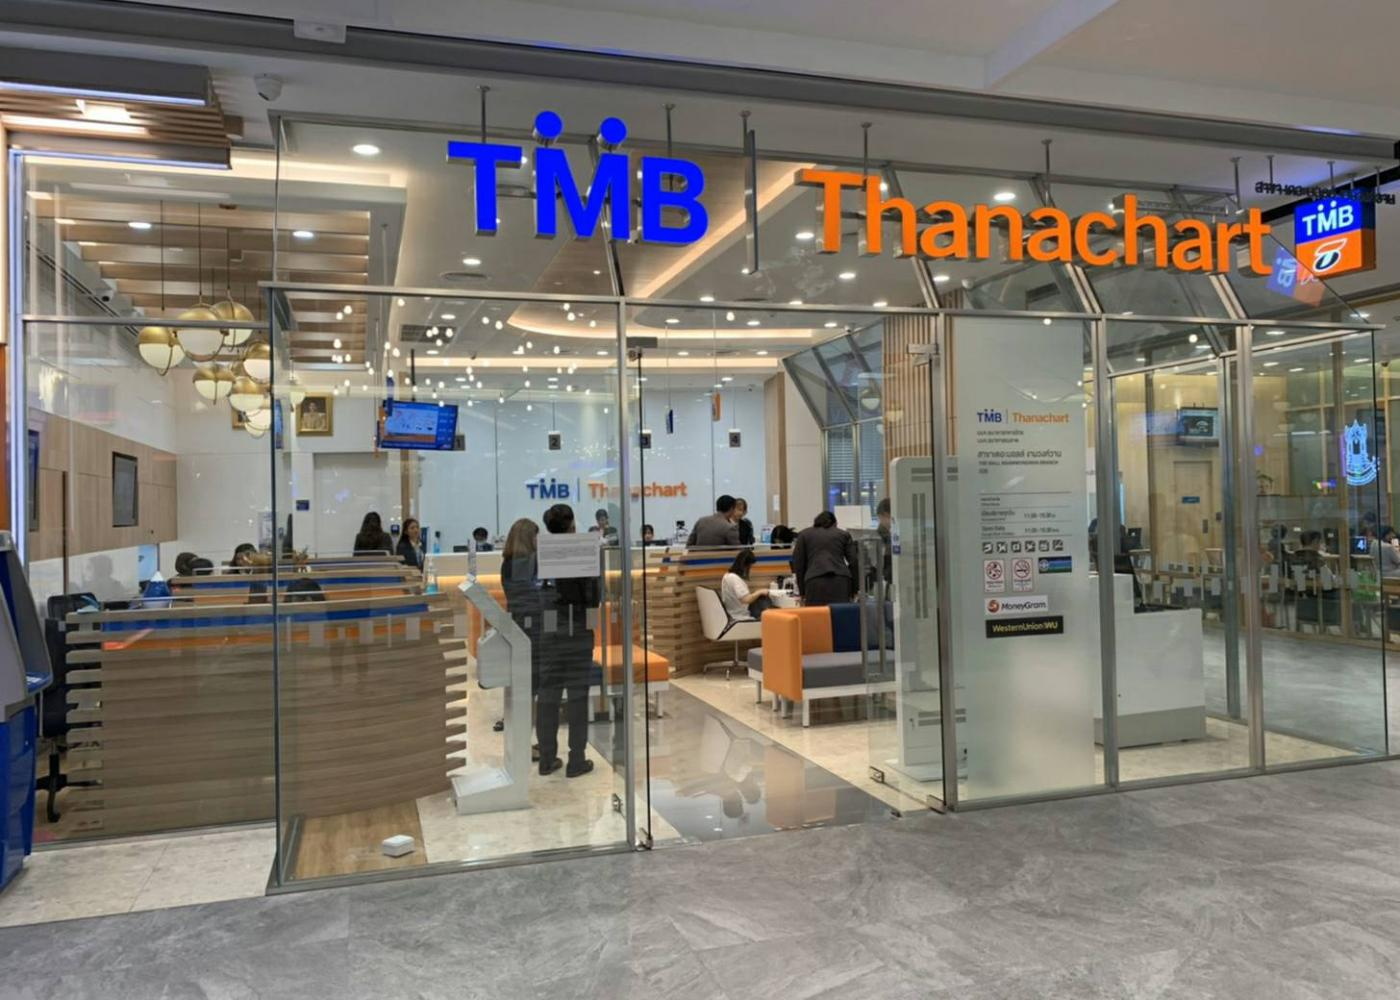 Ten branches of TMB-Thanachart Bank were open by the end of March.